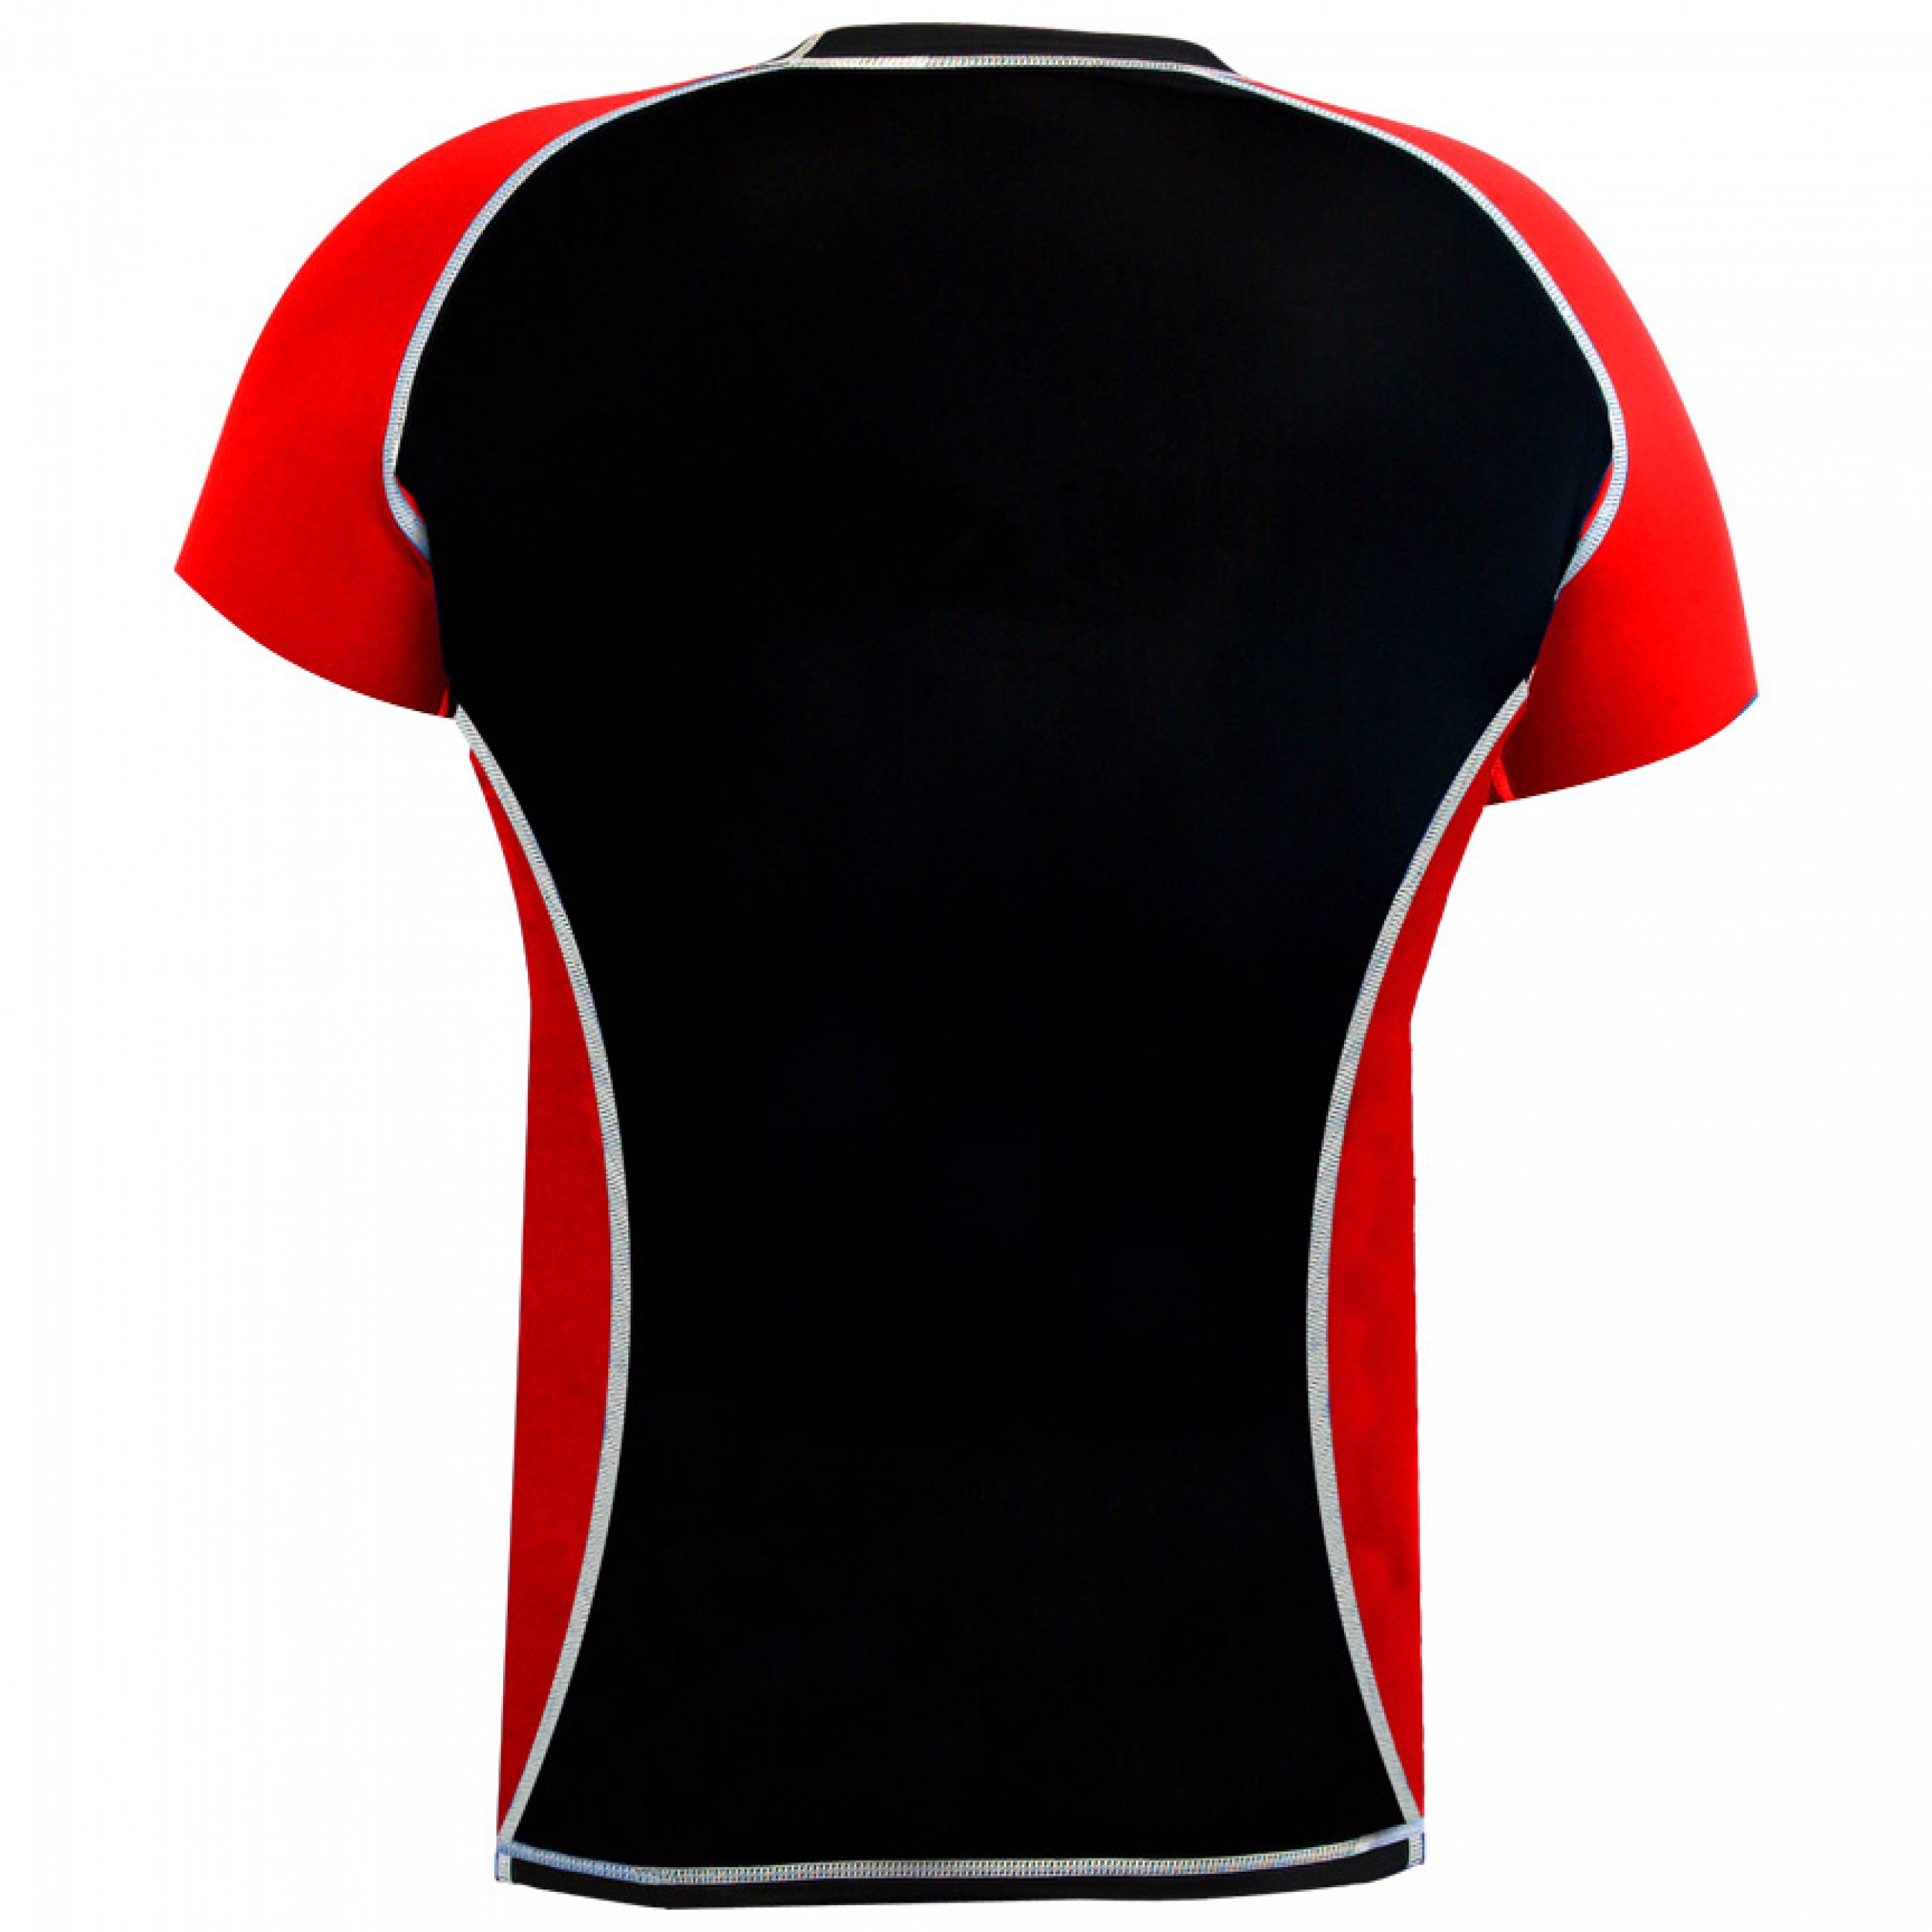 Rank Rashguards Half Sleeve Red